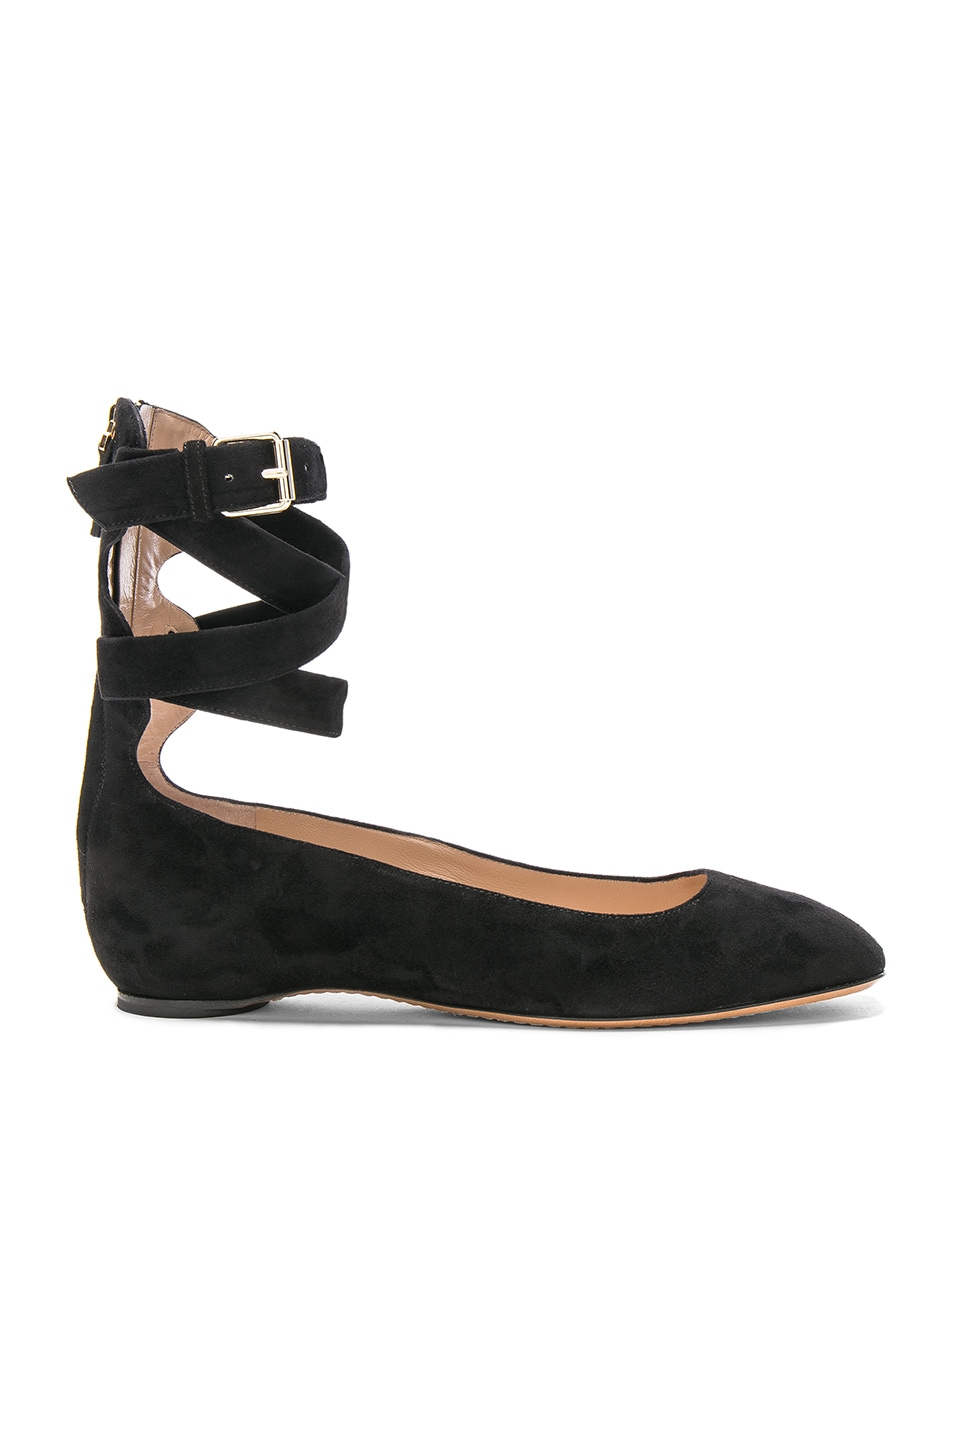 Image 1 of Valentino Suede Ankle Strap Flats in Black